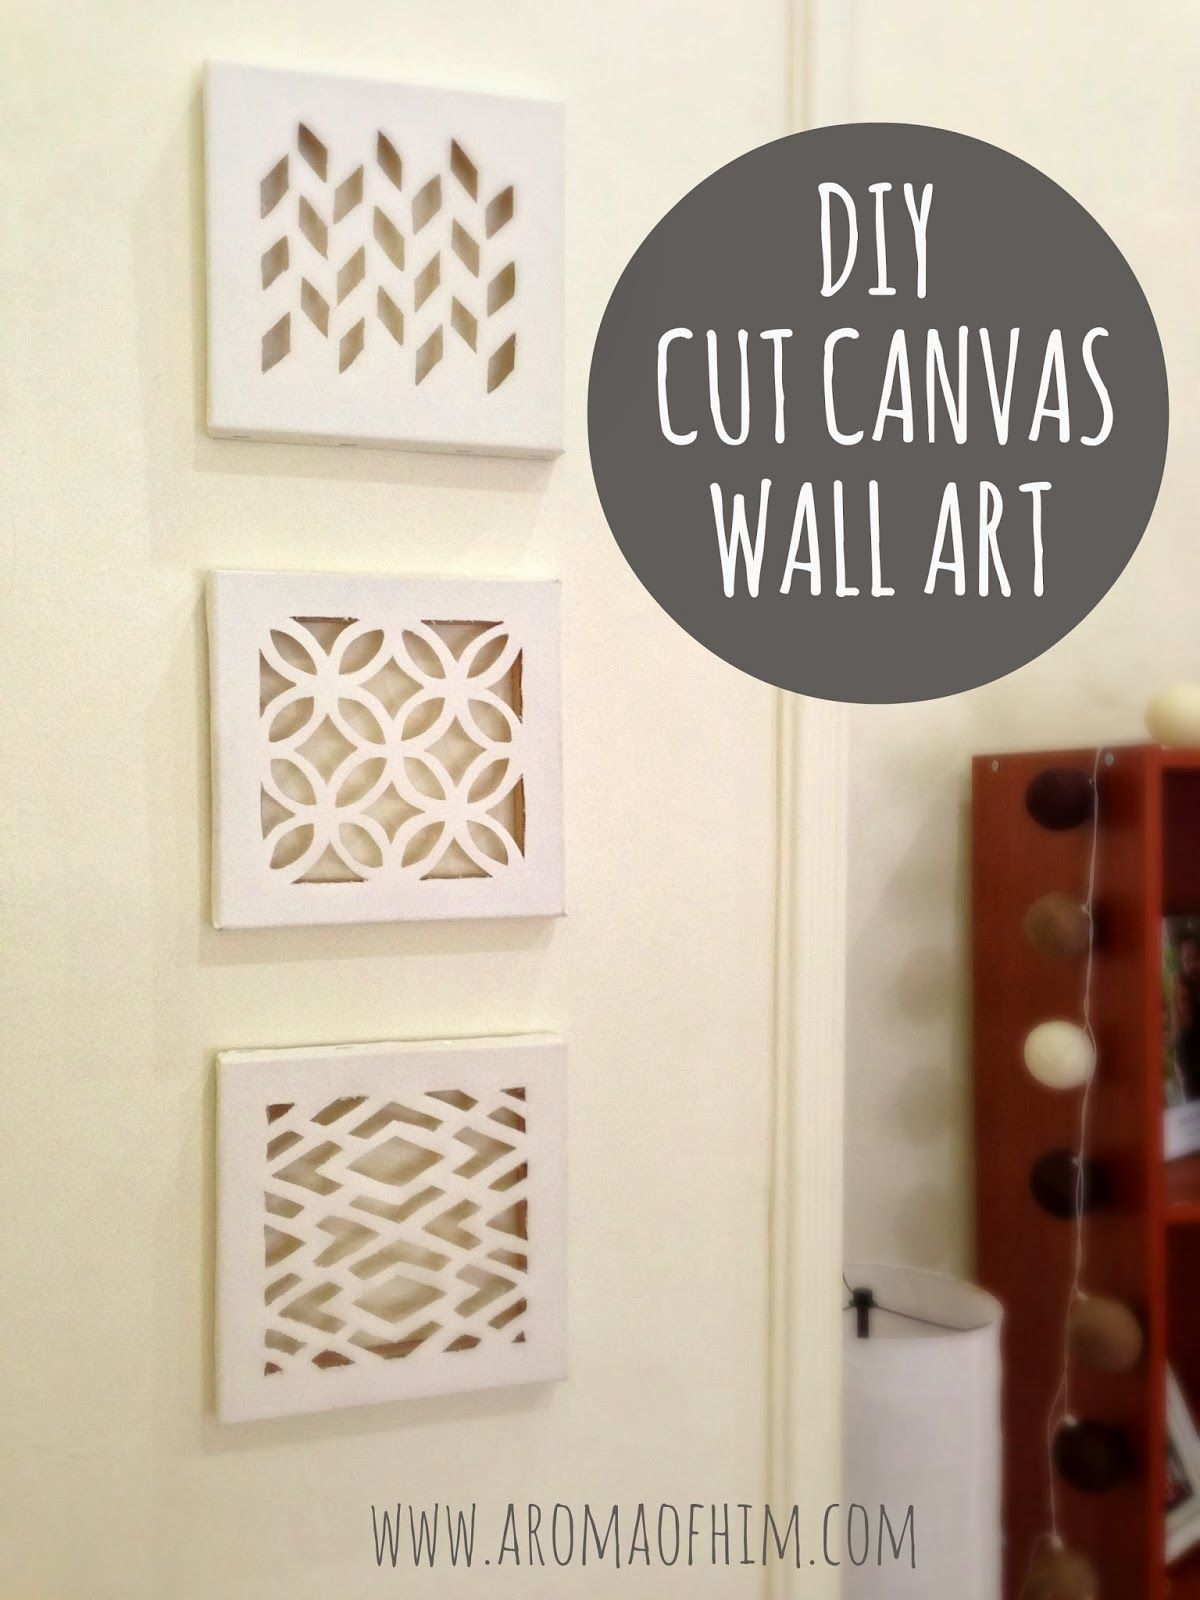 Wall Art Ideas For Bedroom 76 brilliant diy wall art ideas for your blank walls | cut canvas